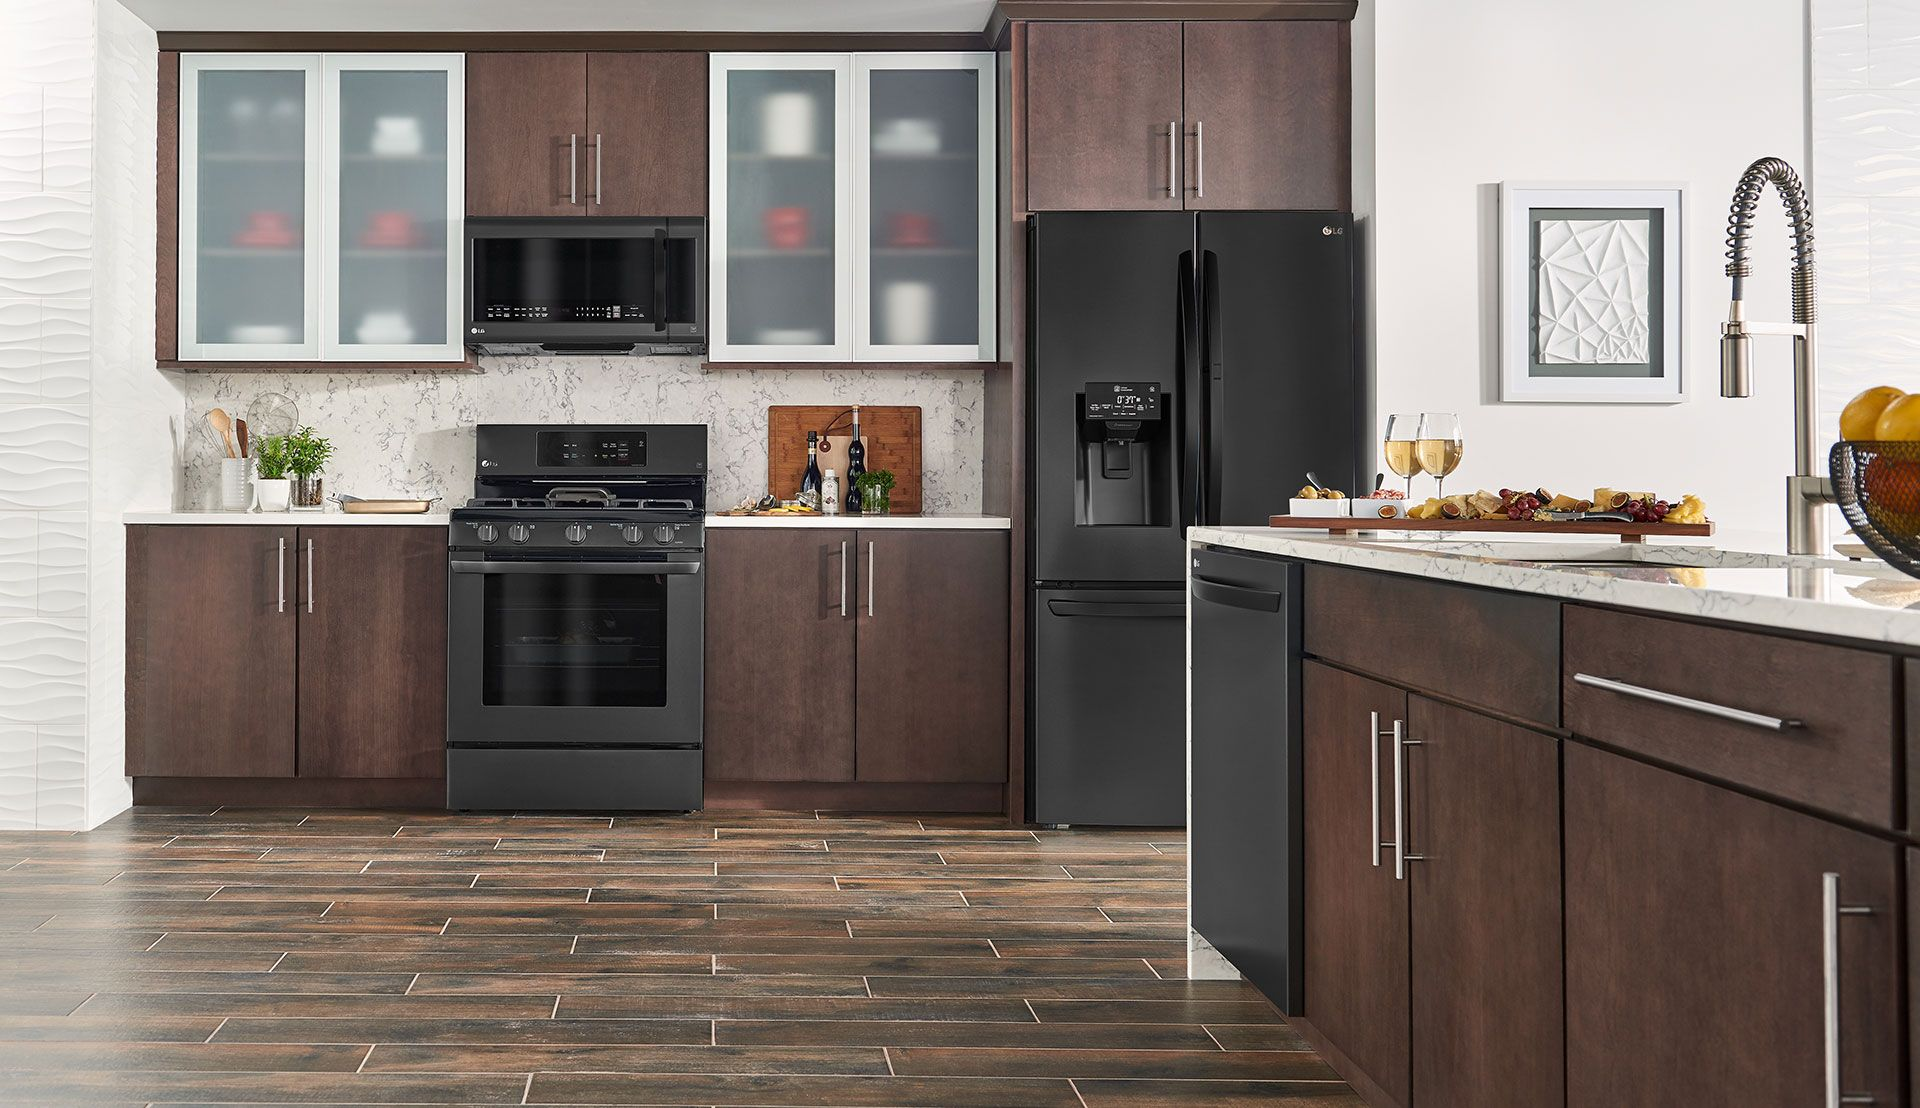 Brown Kitchen Black Appliances Kitchen Black Stainless Steel Kitchen Stainless Steel Kitchen Appliances